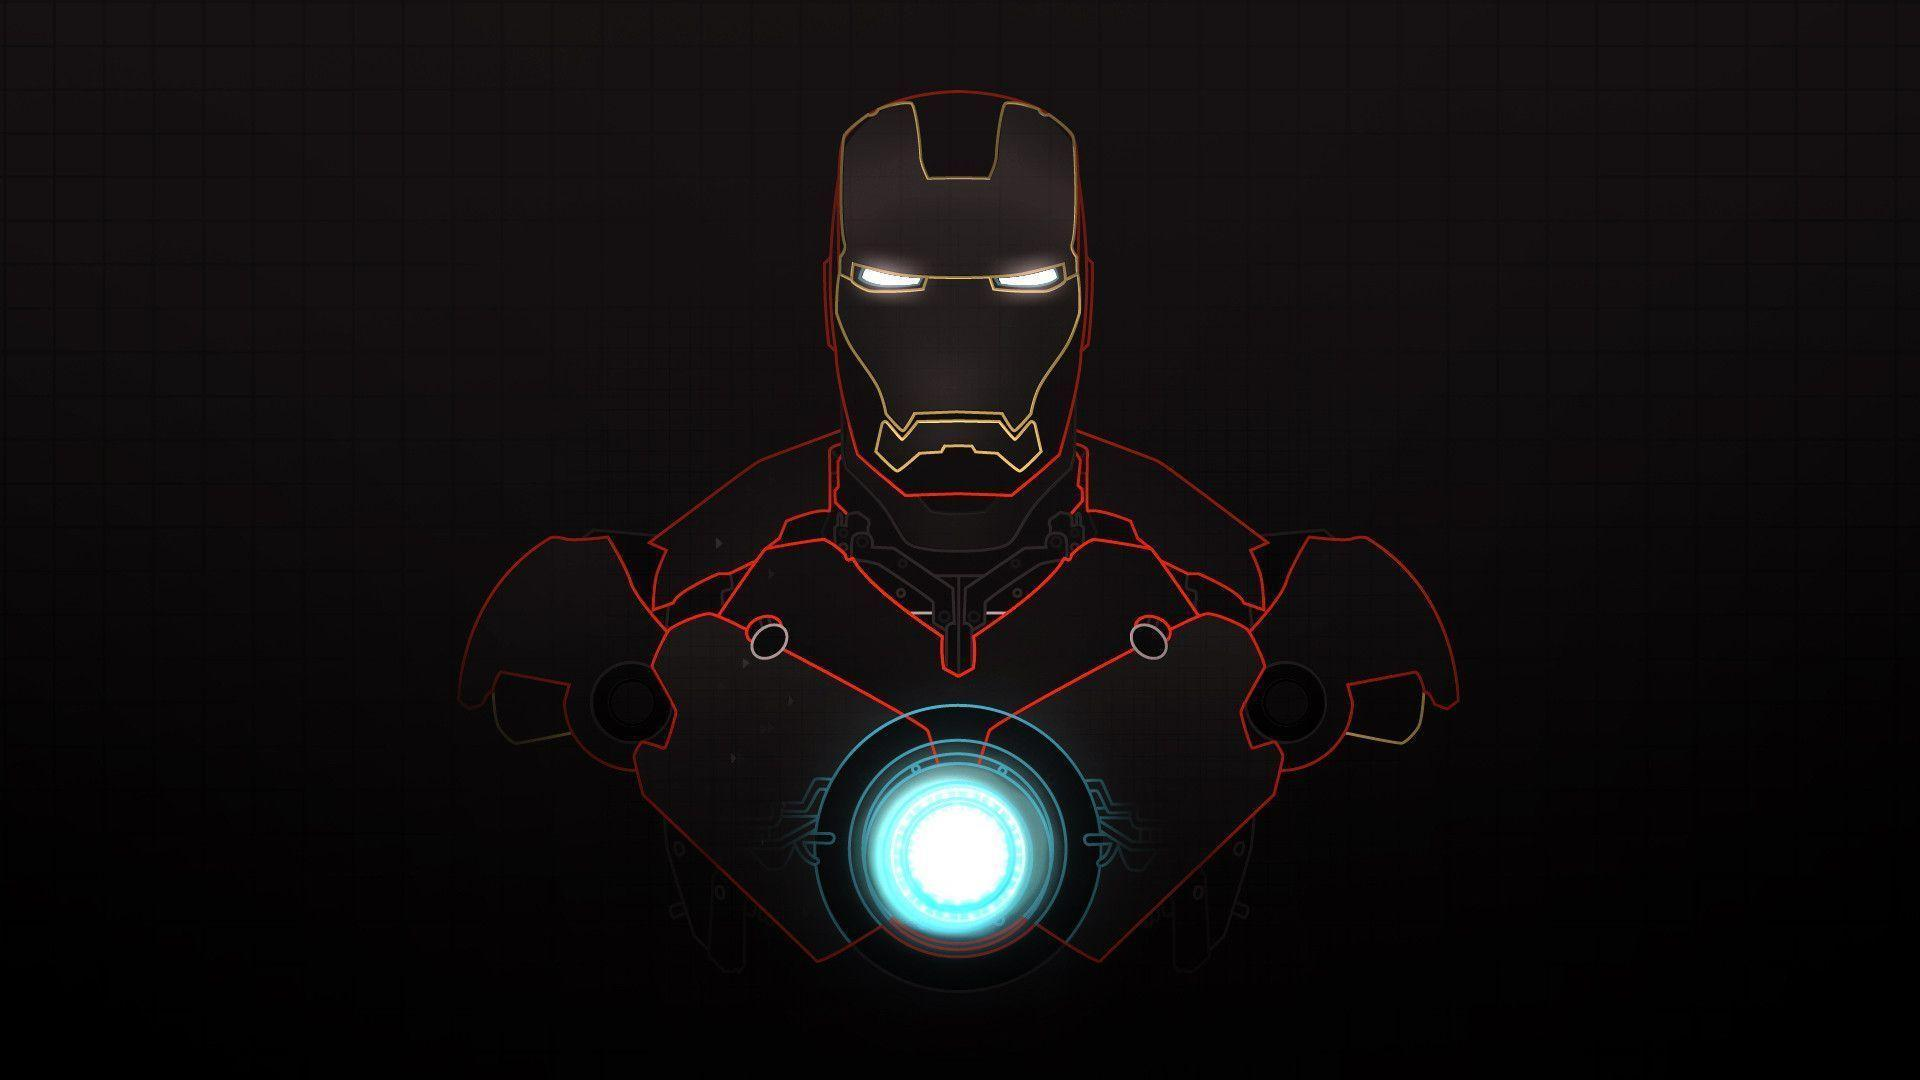 Iron man wallpapers wallpaper cave - Iron man heart wallpaper ...